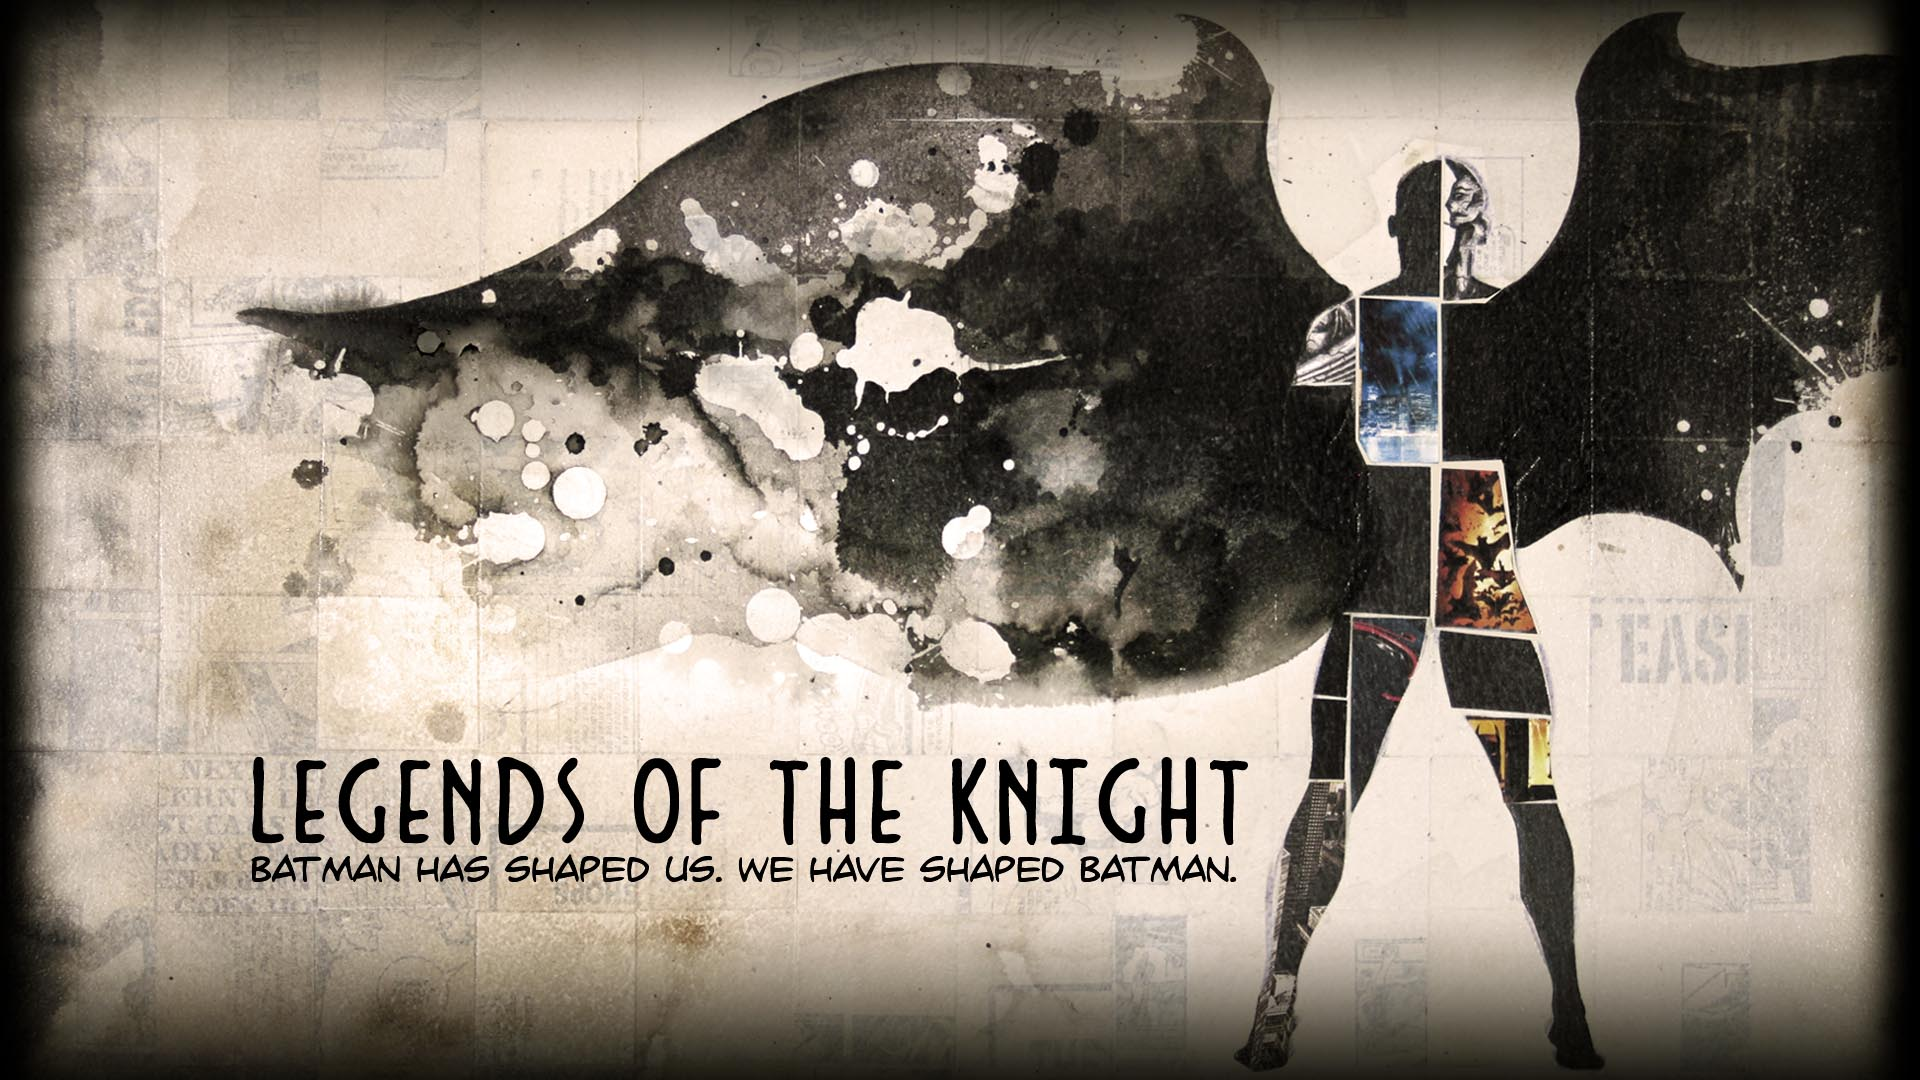 http://maniacalgeek.files.wordpress.com/2014/02/legends-of-the-knight.jpg